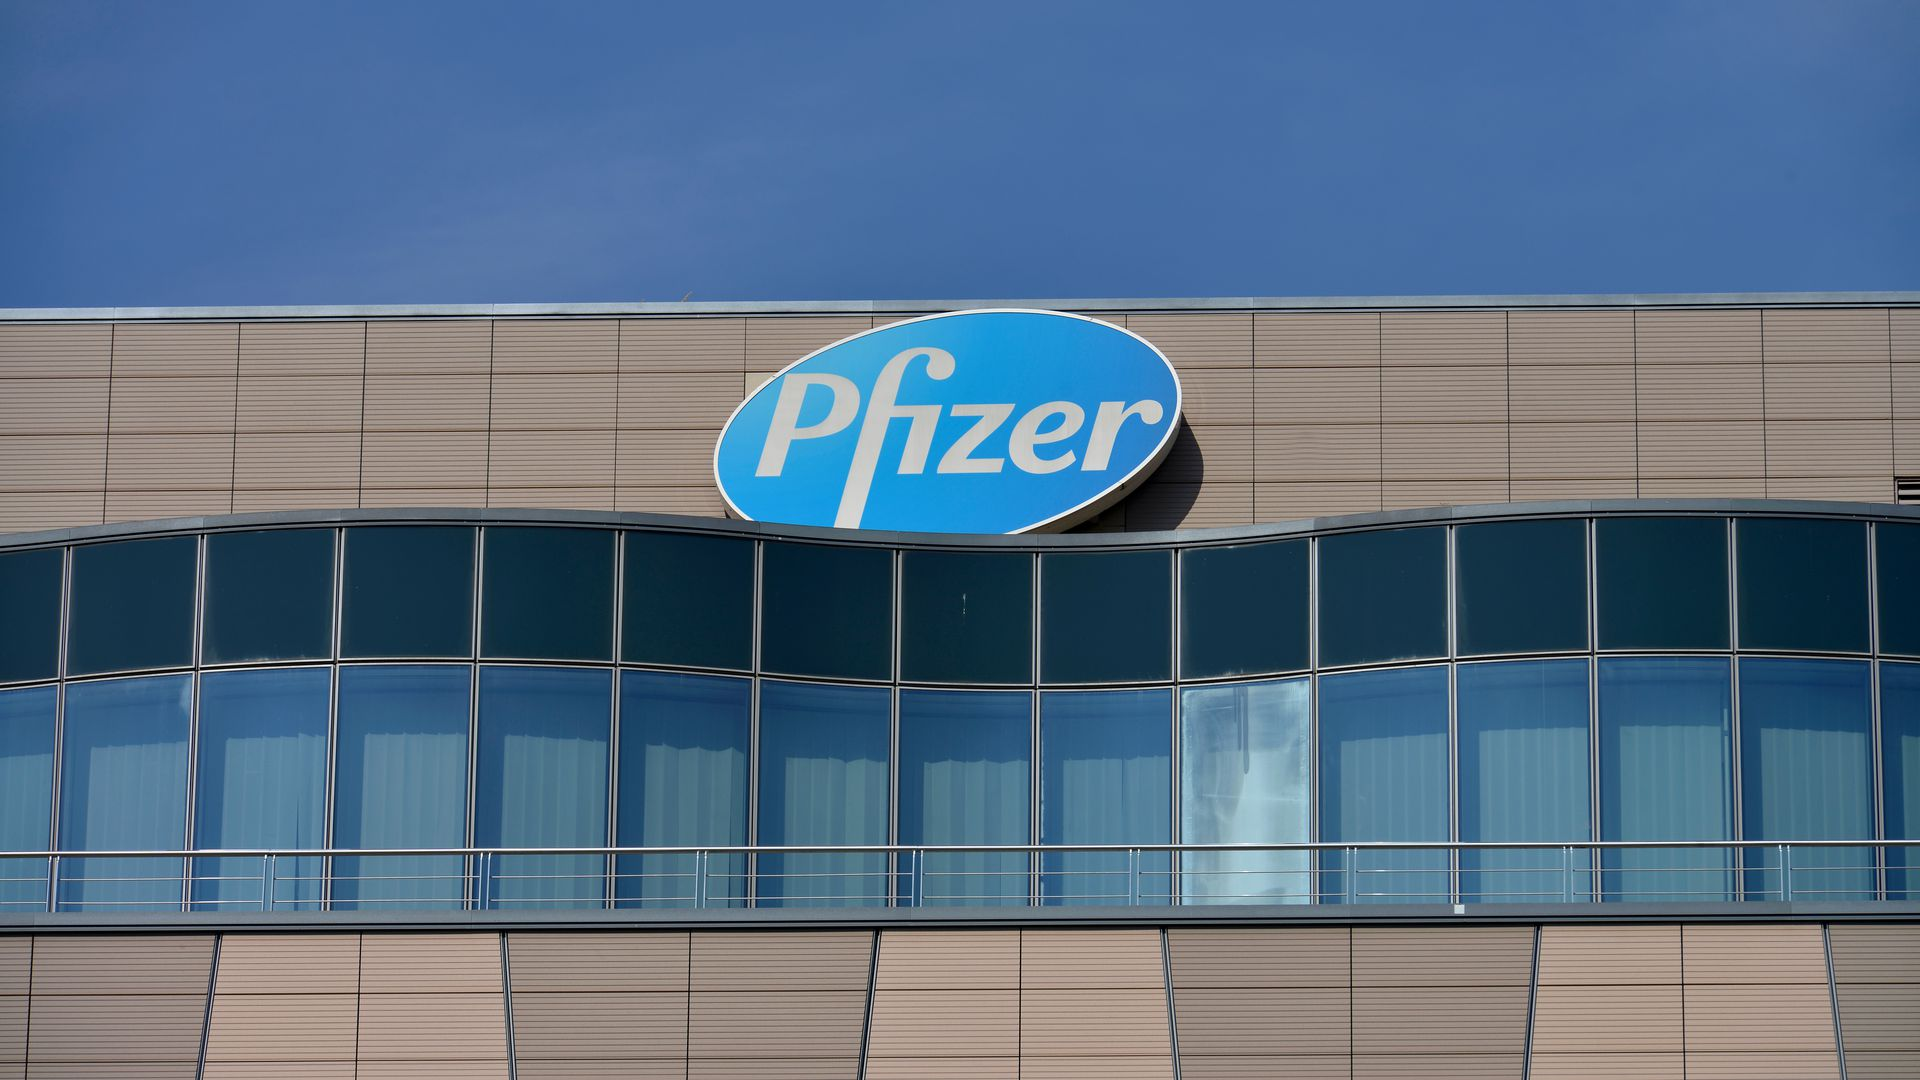 A building with the Pfizer logo.